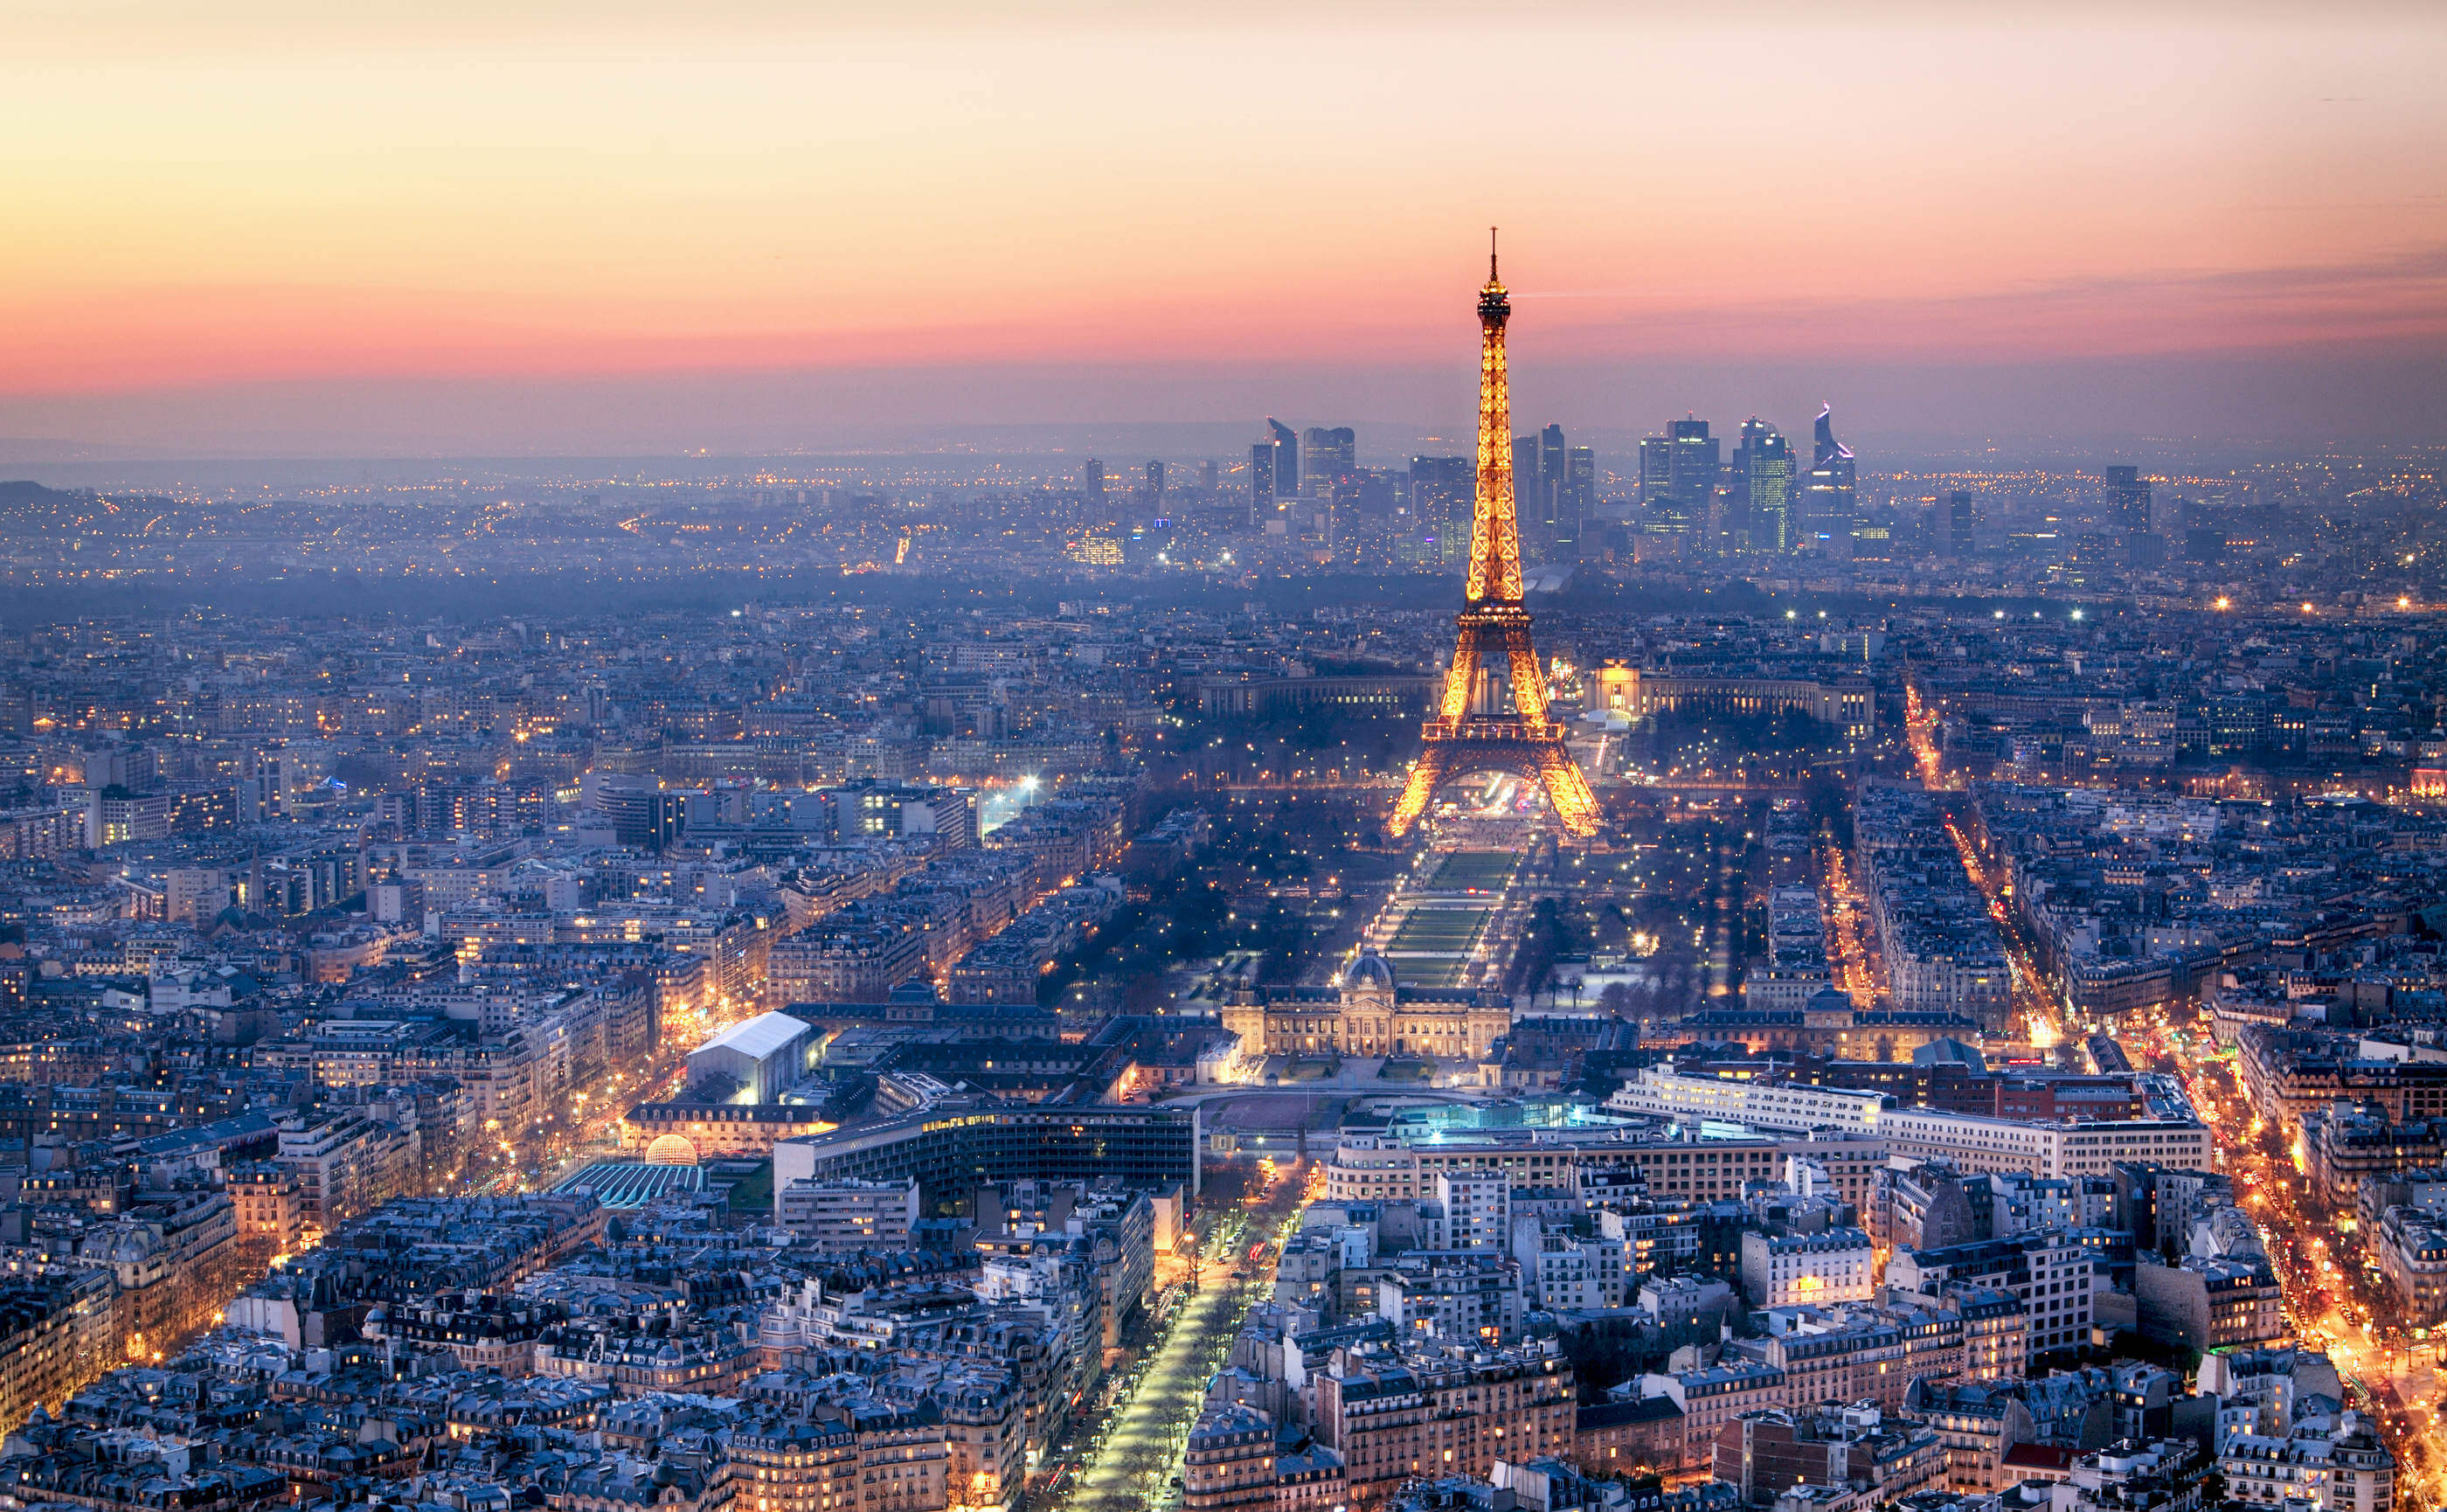 Arial shot of the Eifel Tower in Paris, which is in the EU, at sunset